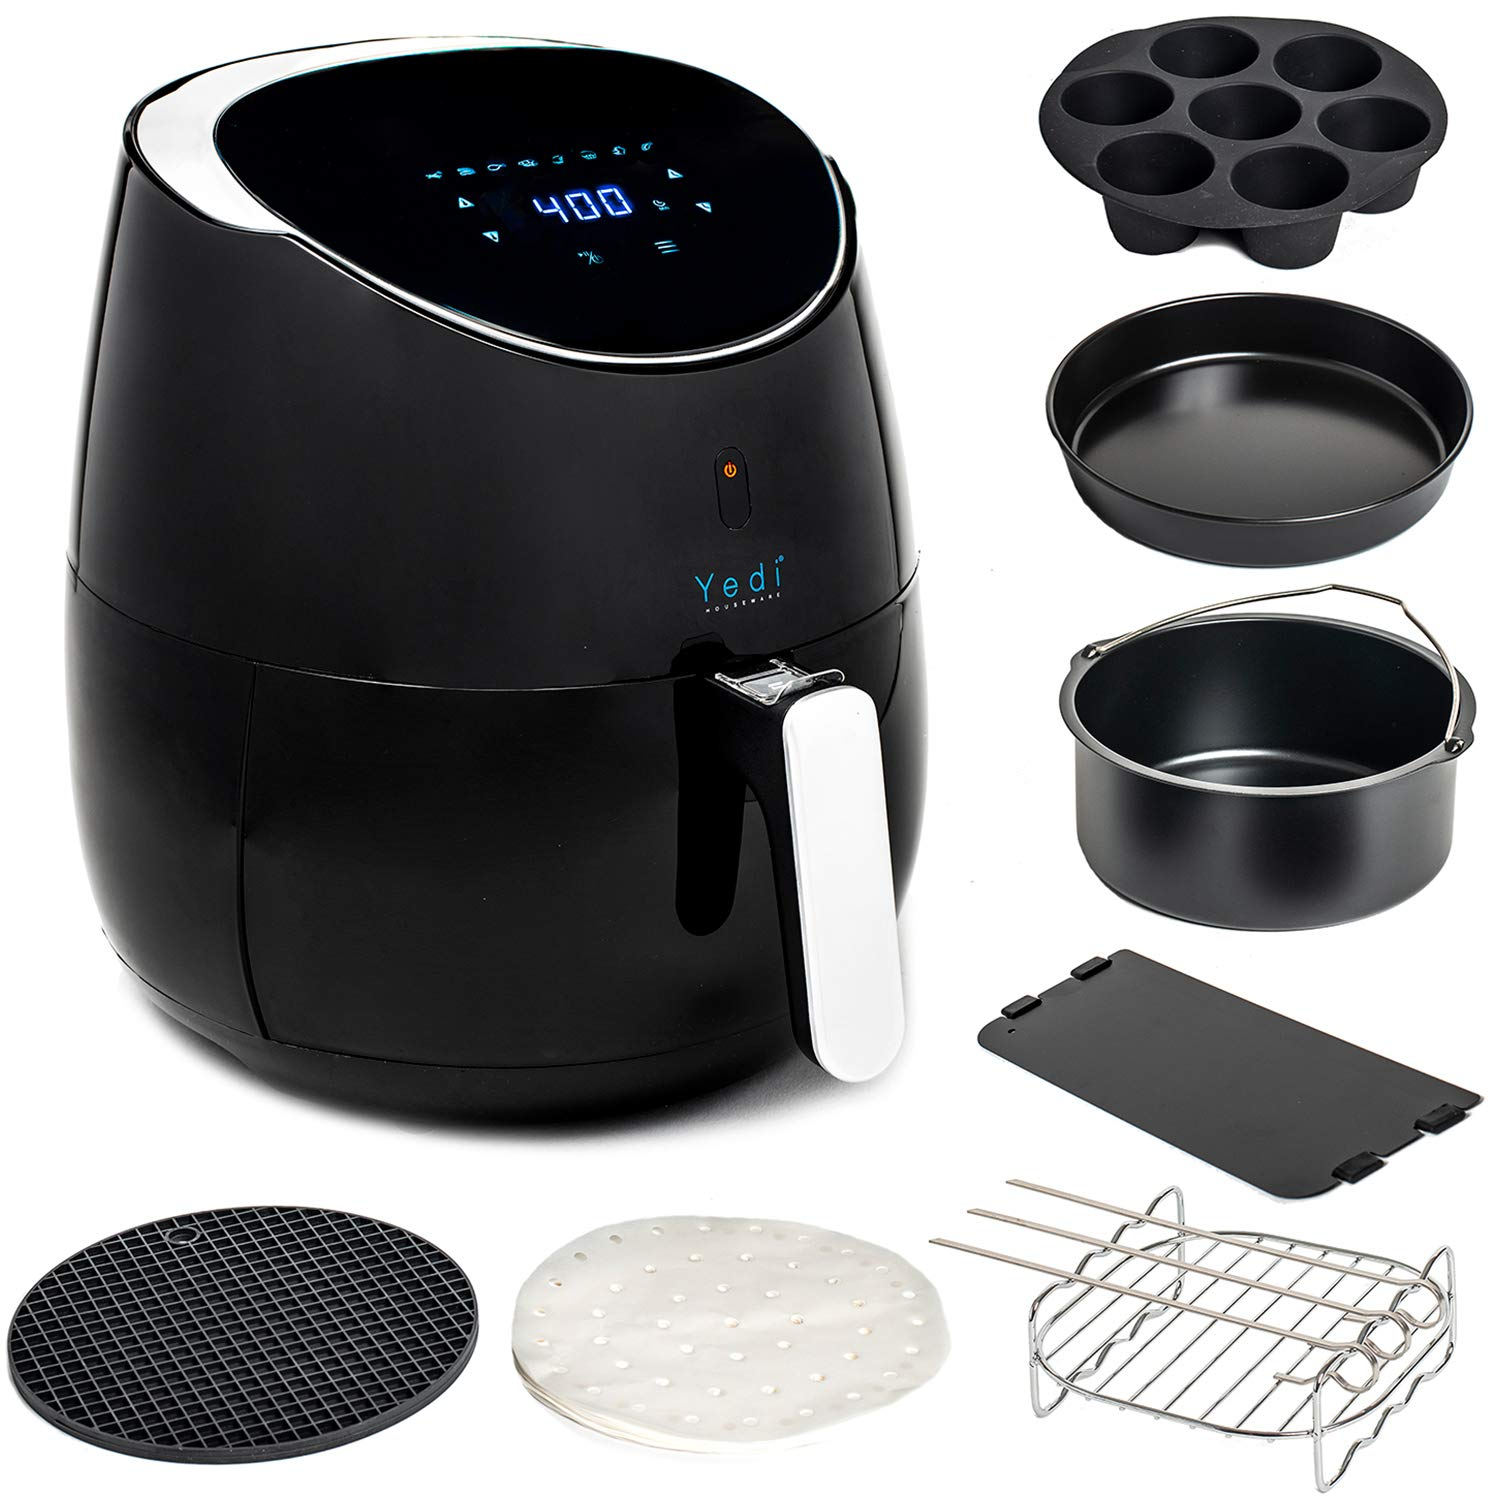 Total Package XL Air Fryer, 100 Recipes Included, with Cooking Basket Divider and Deluxe Accessory Kit by Yedi Houseware (5.8 QT)